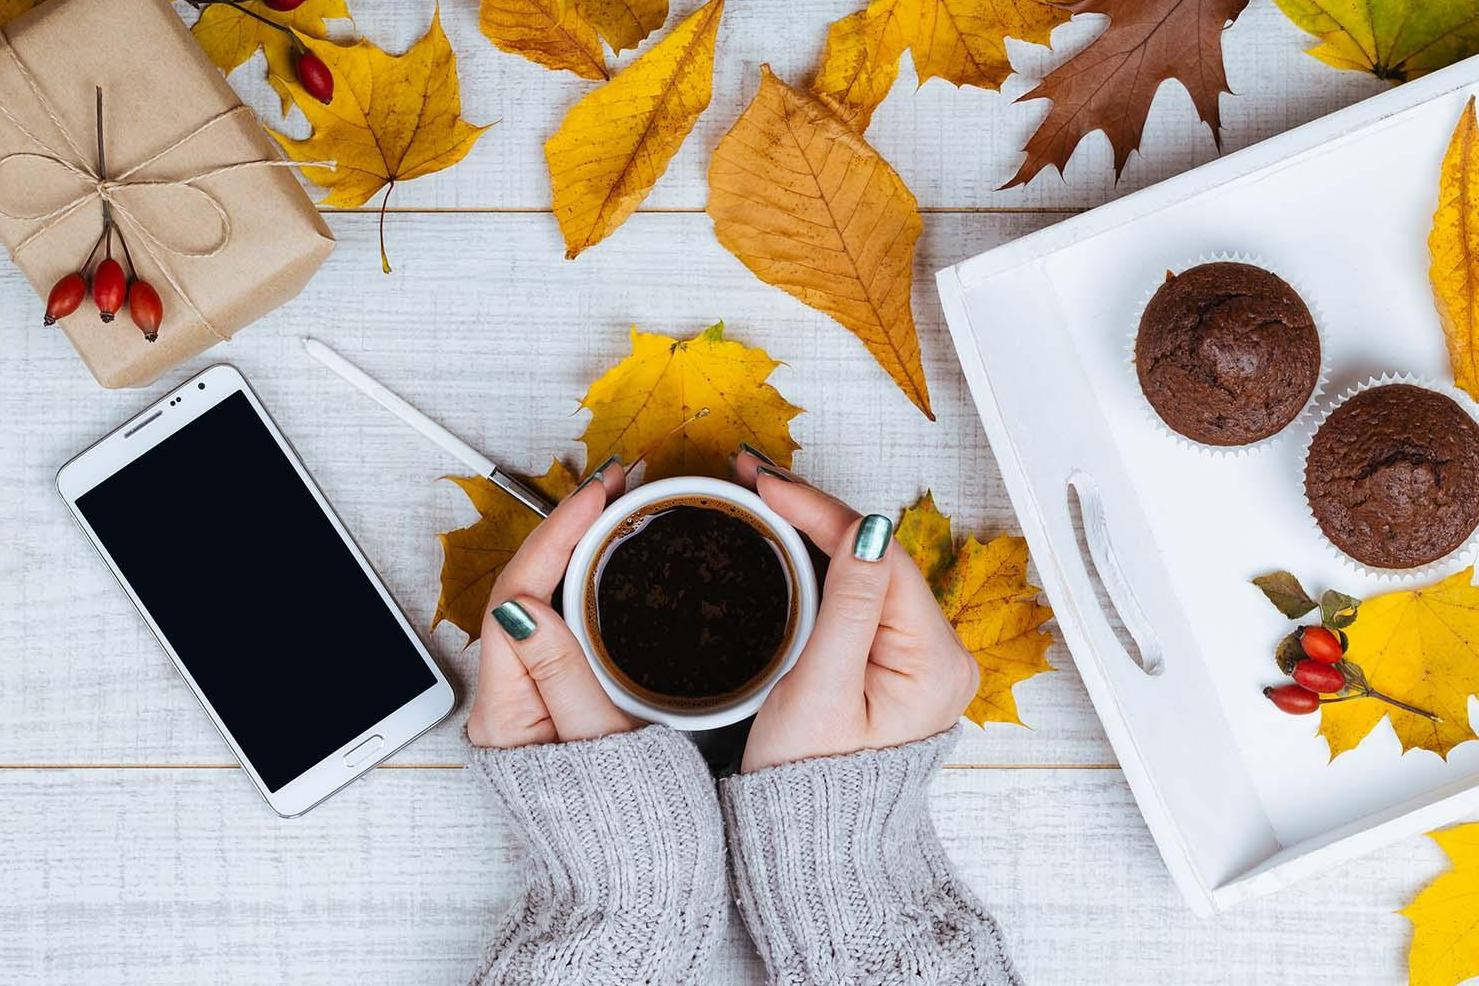 18 Biggest Lifestyle Trends Of 2016 In Review From Hygge